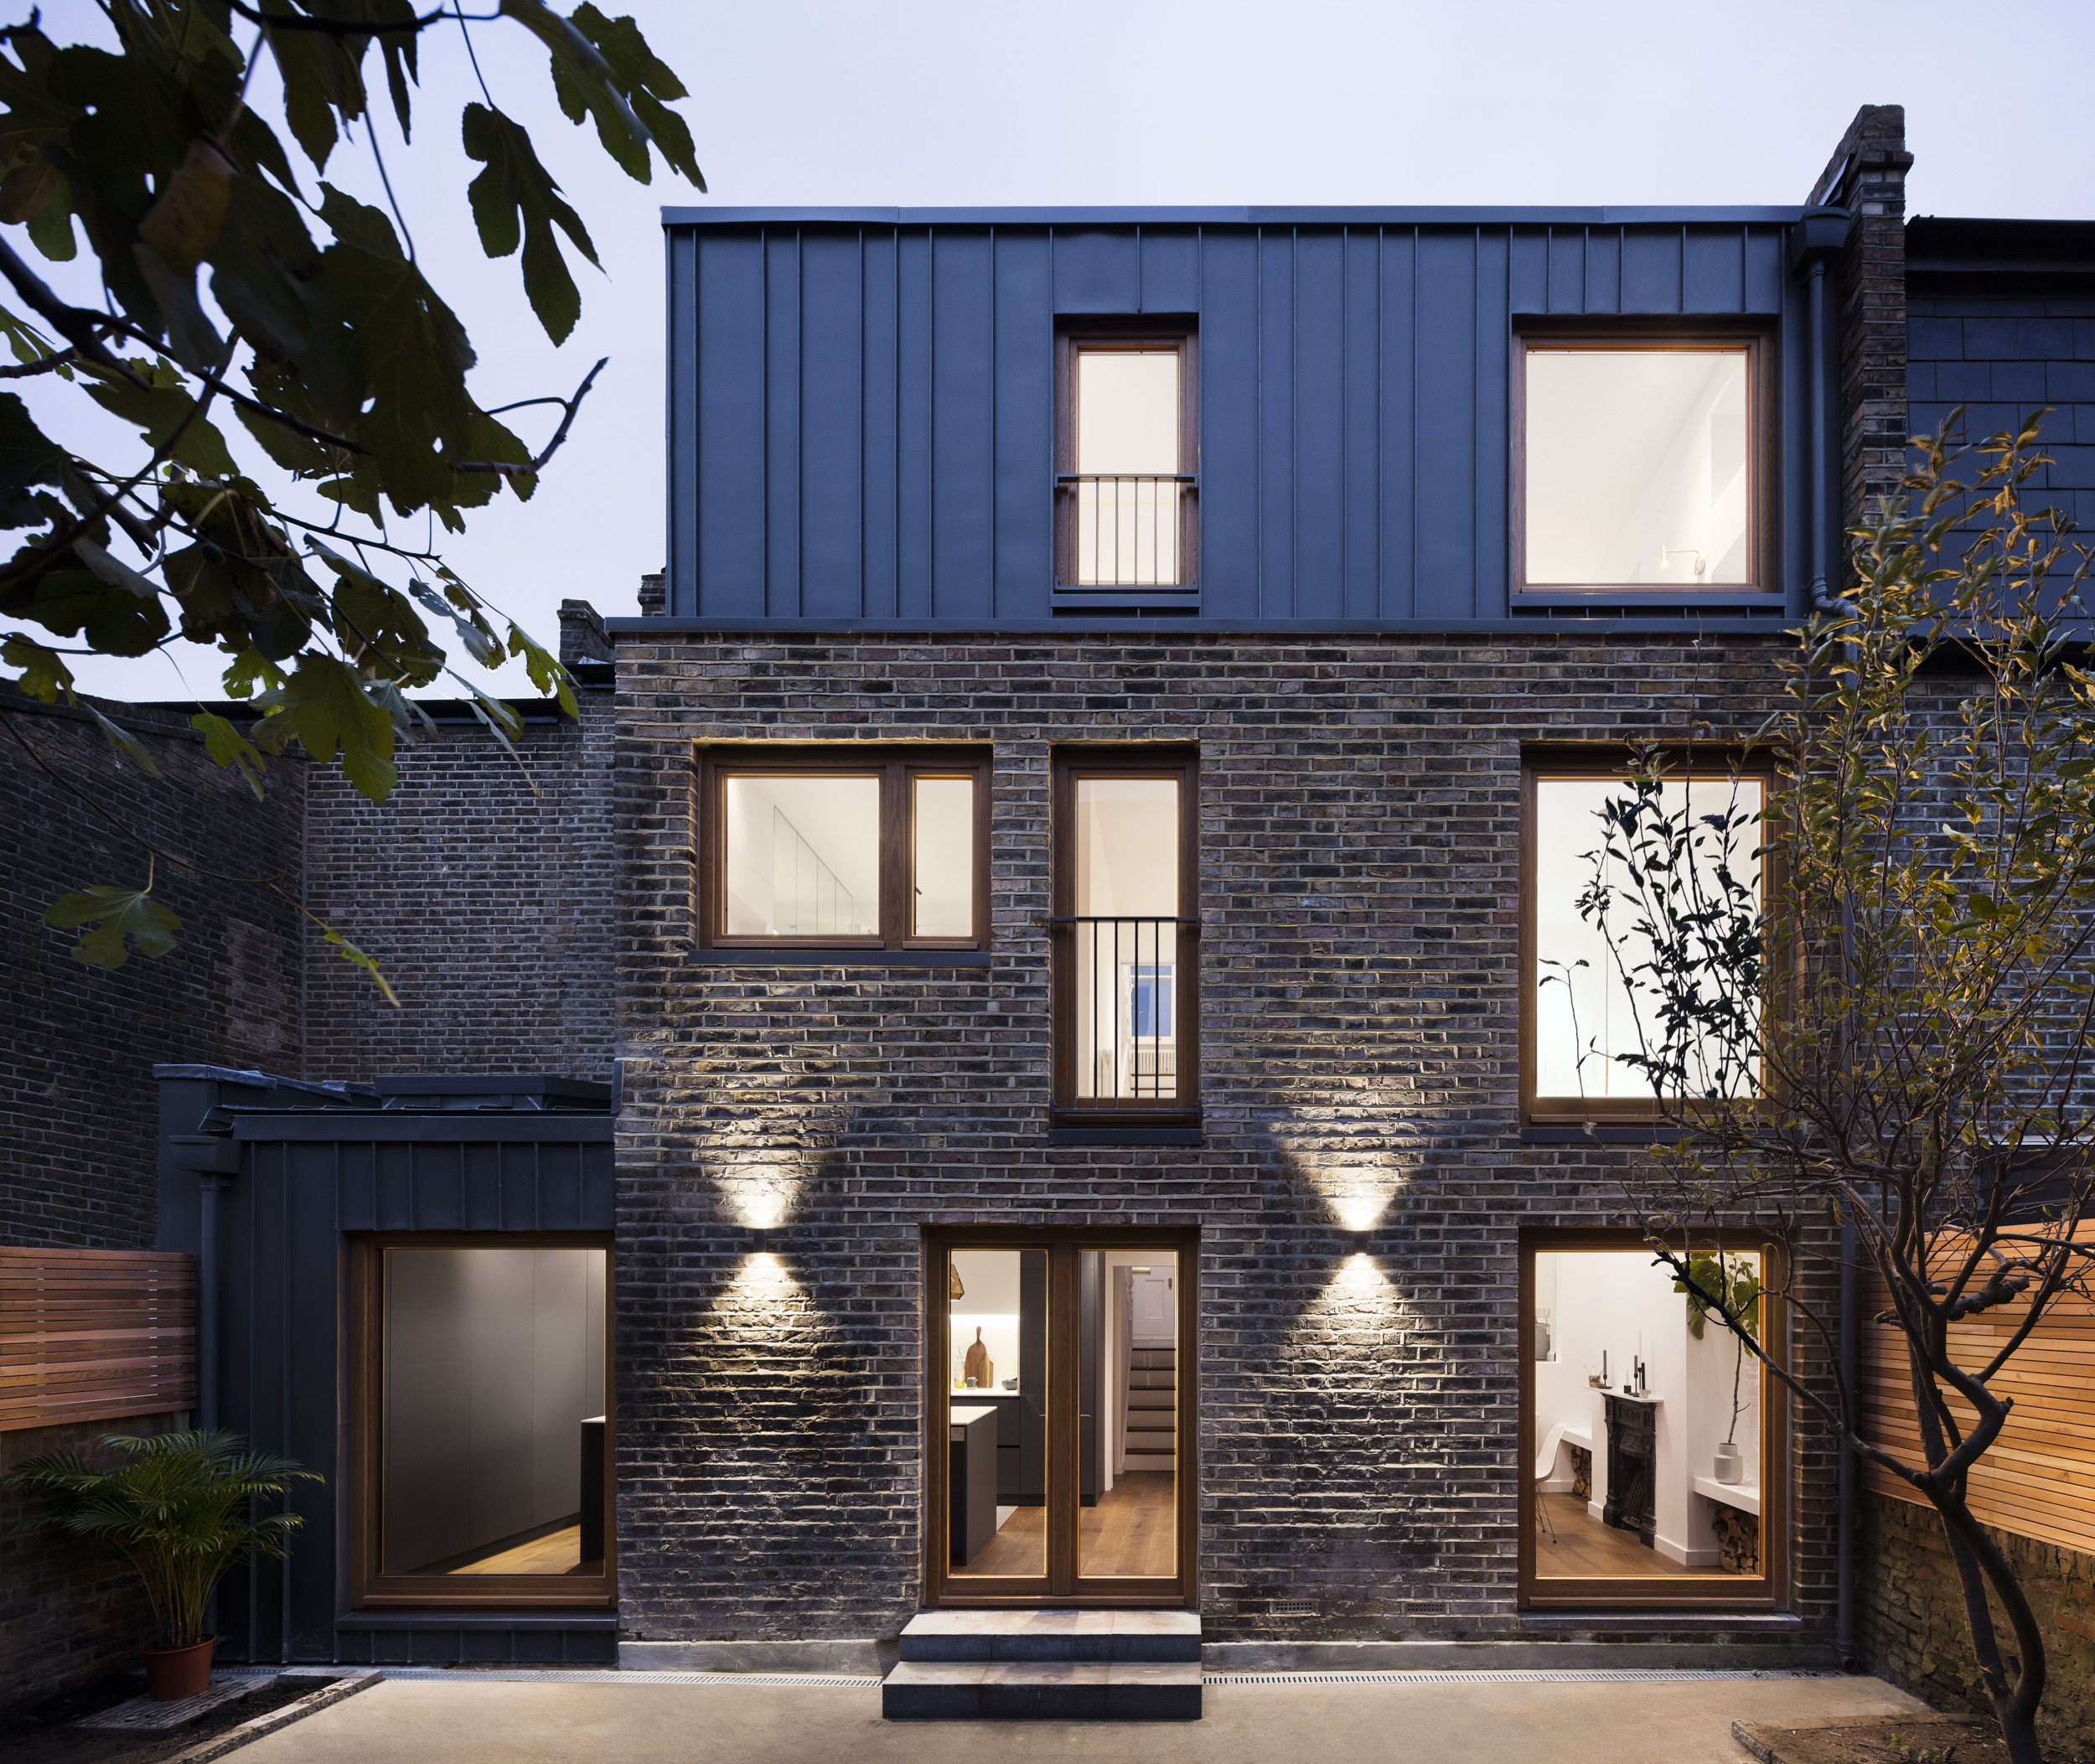 Architectural Practice in London